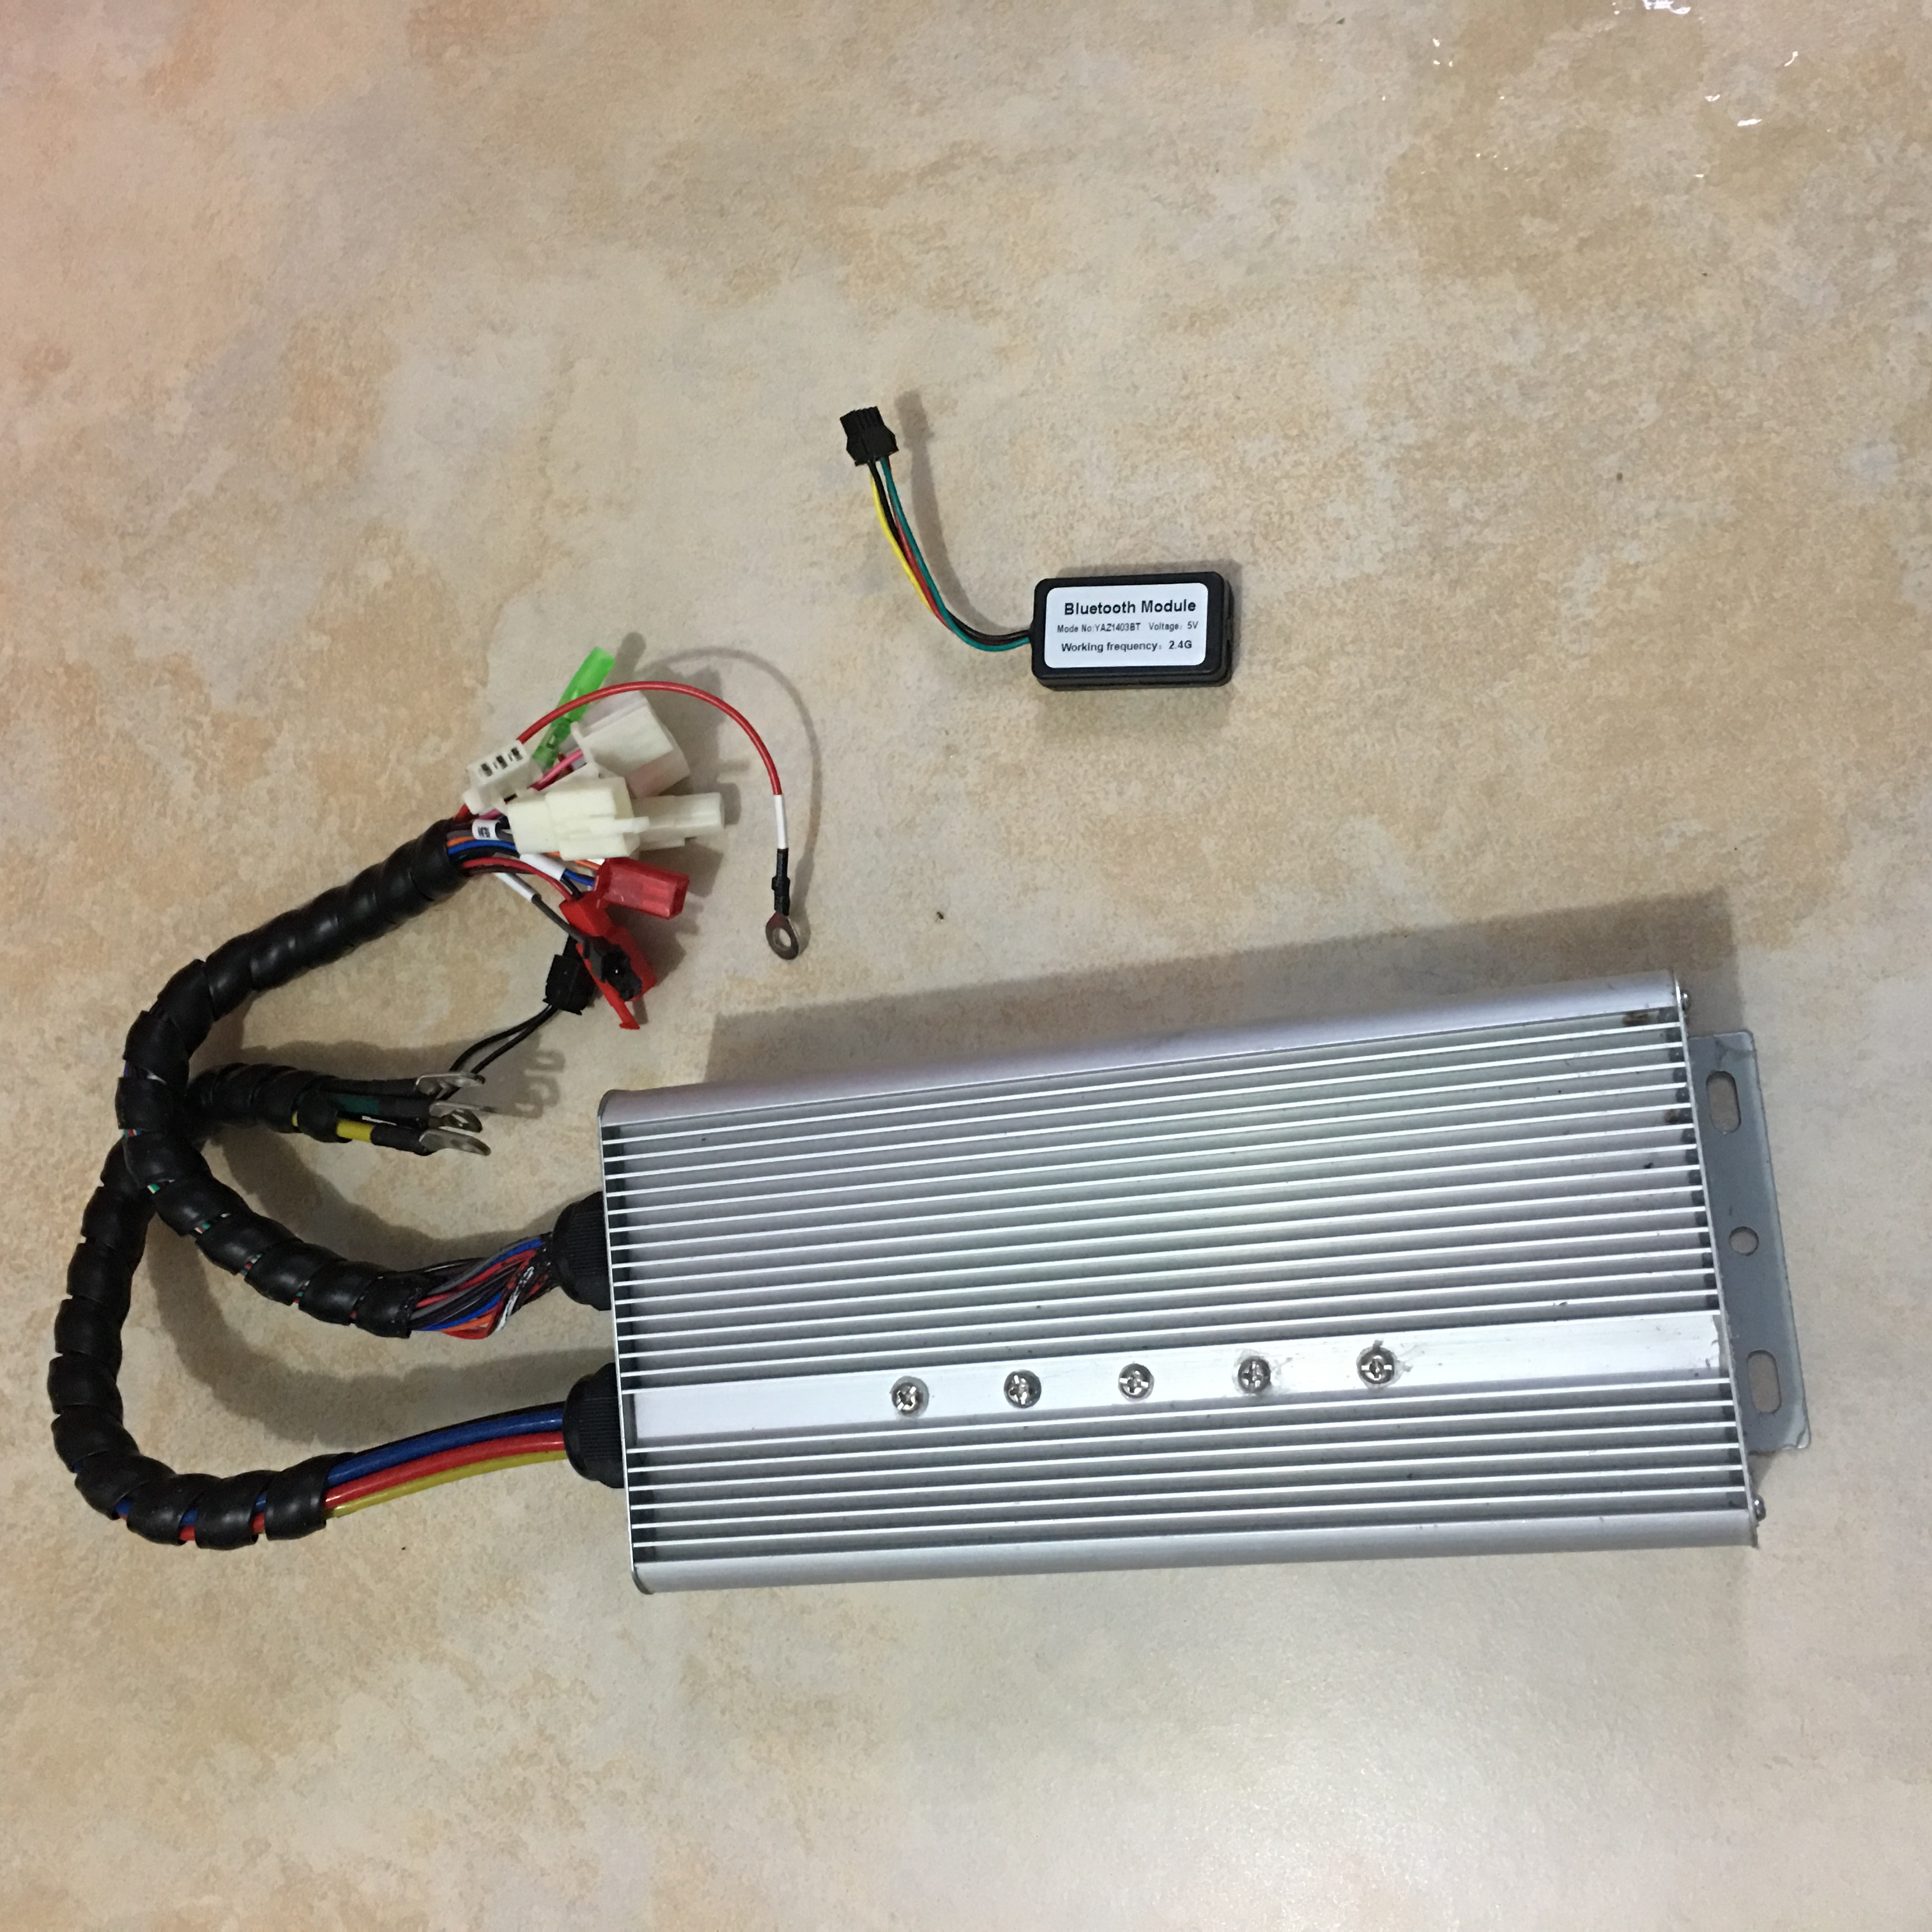 Yuyang King YKZ9650 84V <font><b>96V</b></font> 50A 800W-1000W BLDC Controller For Electric Scooter E-bike with Bluetooth image